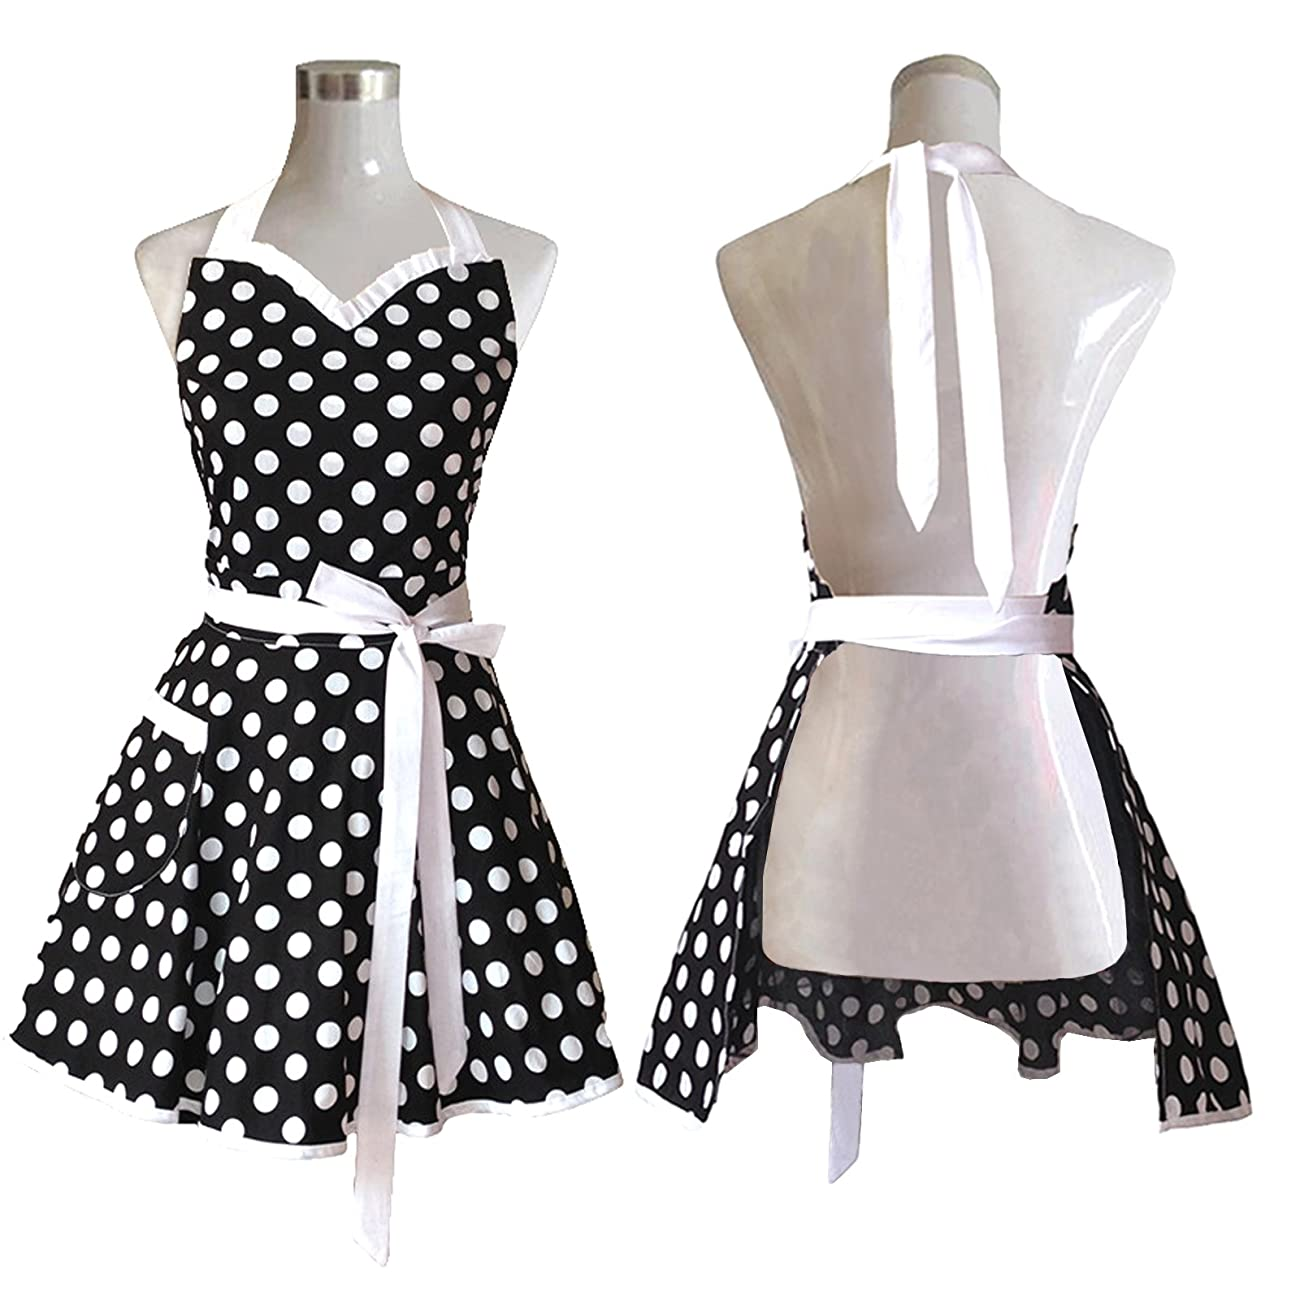 Lovely Sweetheart Black Retro Kitchen Aprons Woman Girl Cotton Polka Dot Cooking Salon Pinafore Vintage Apron Dress Gift 0